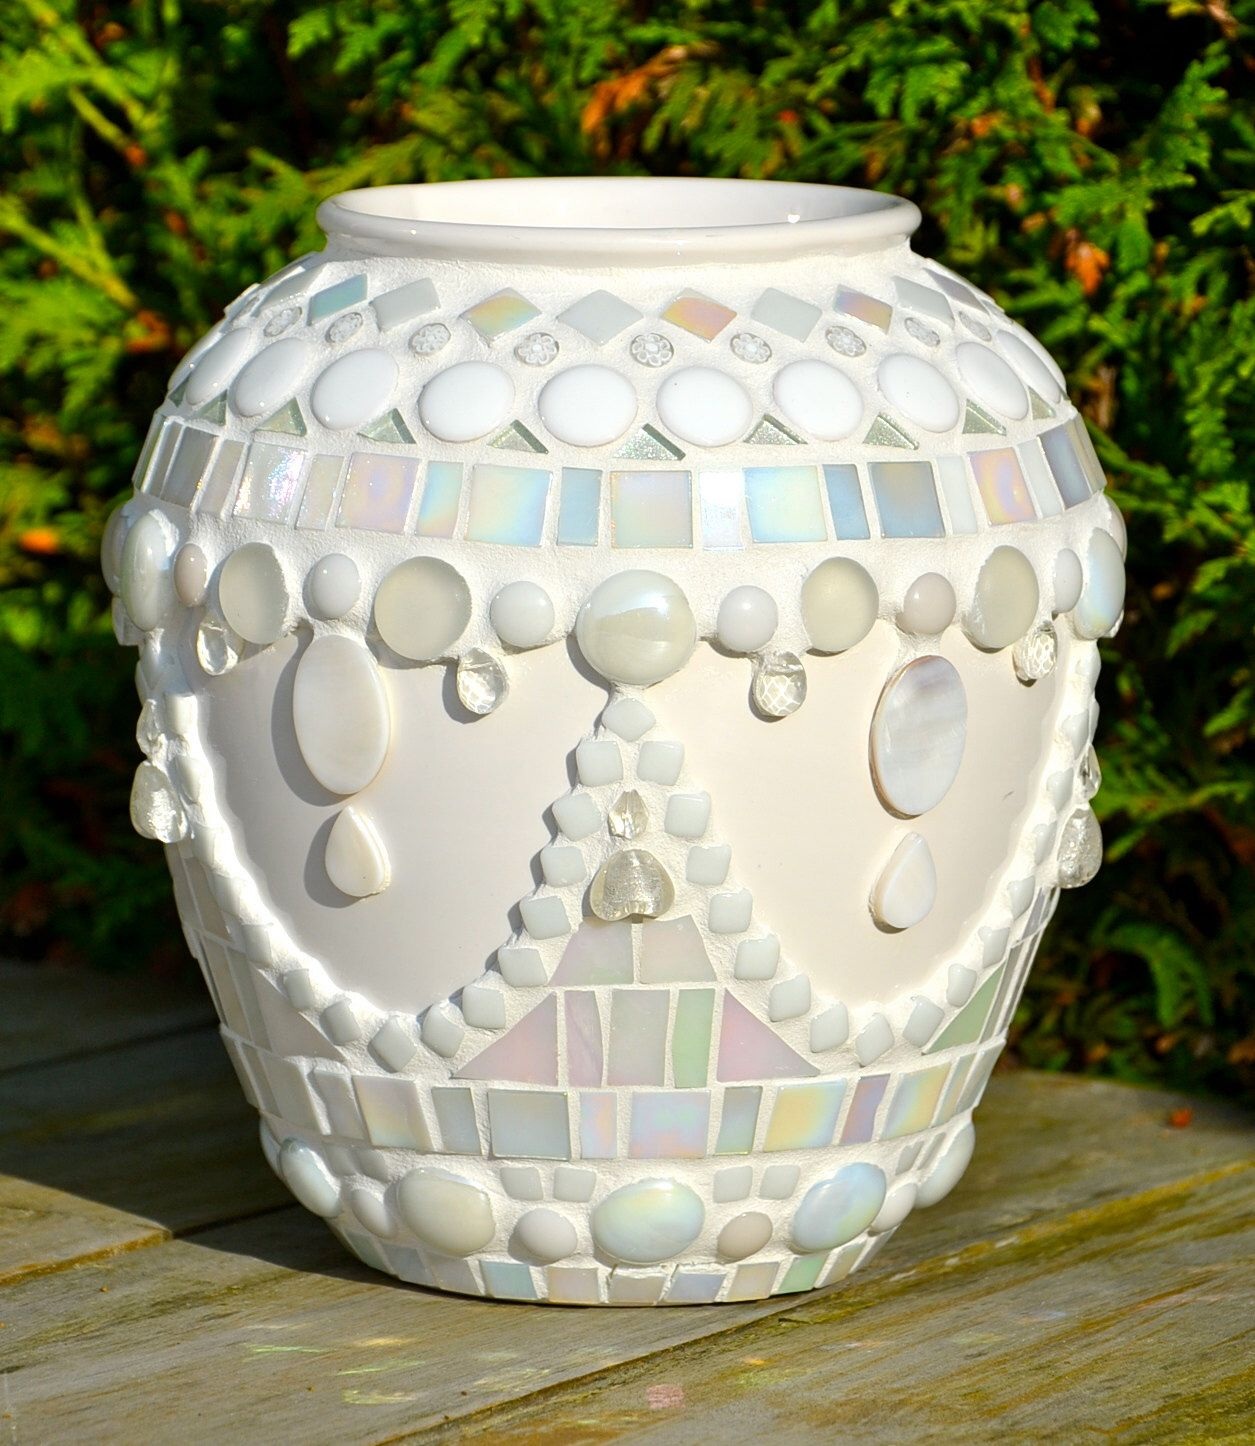 White glass mosaic and ceramic flower vase by mimosaico on ... - photo#10